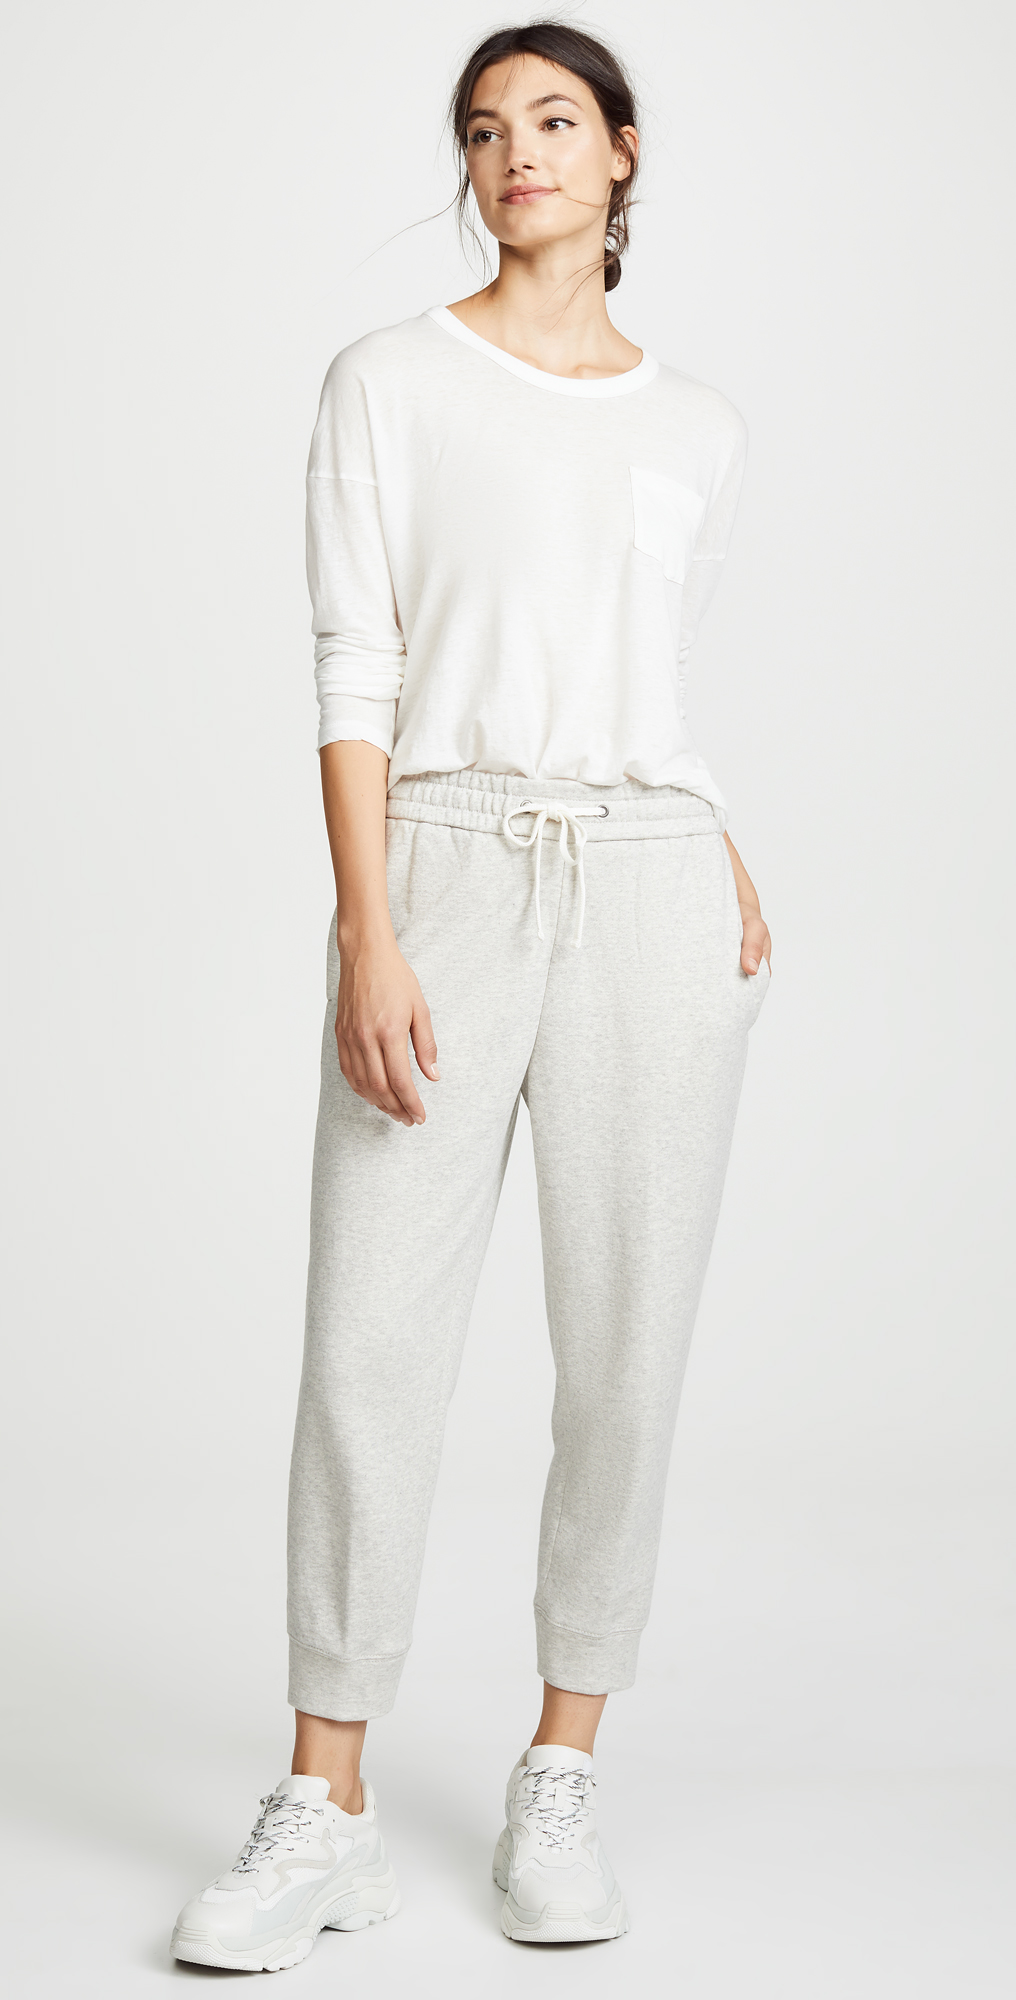 3b7d12406be James Perse Relaxed Luxe Sweatpants